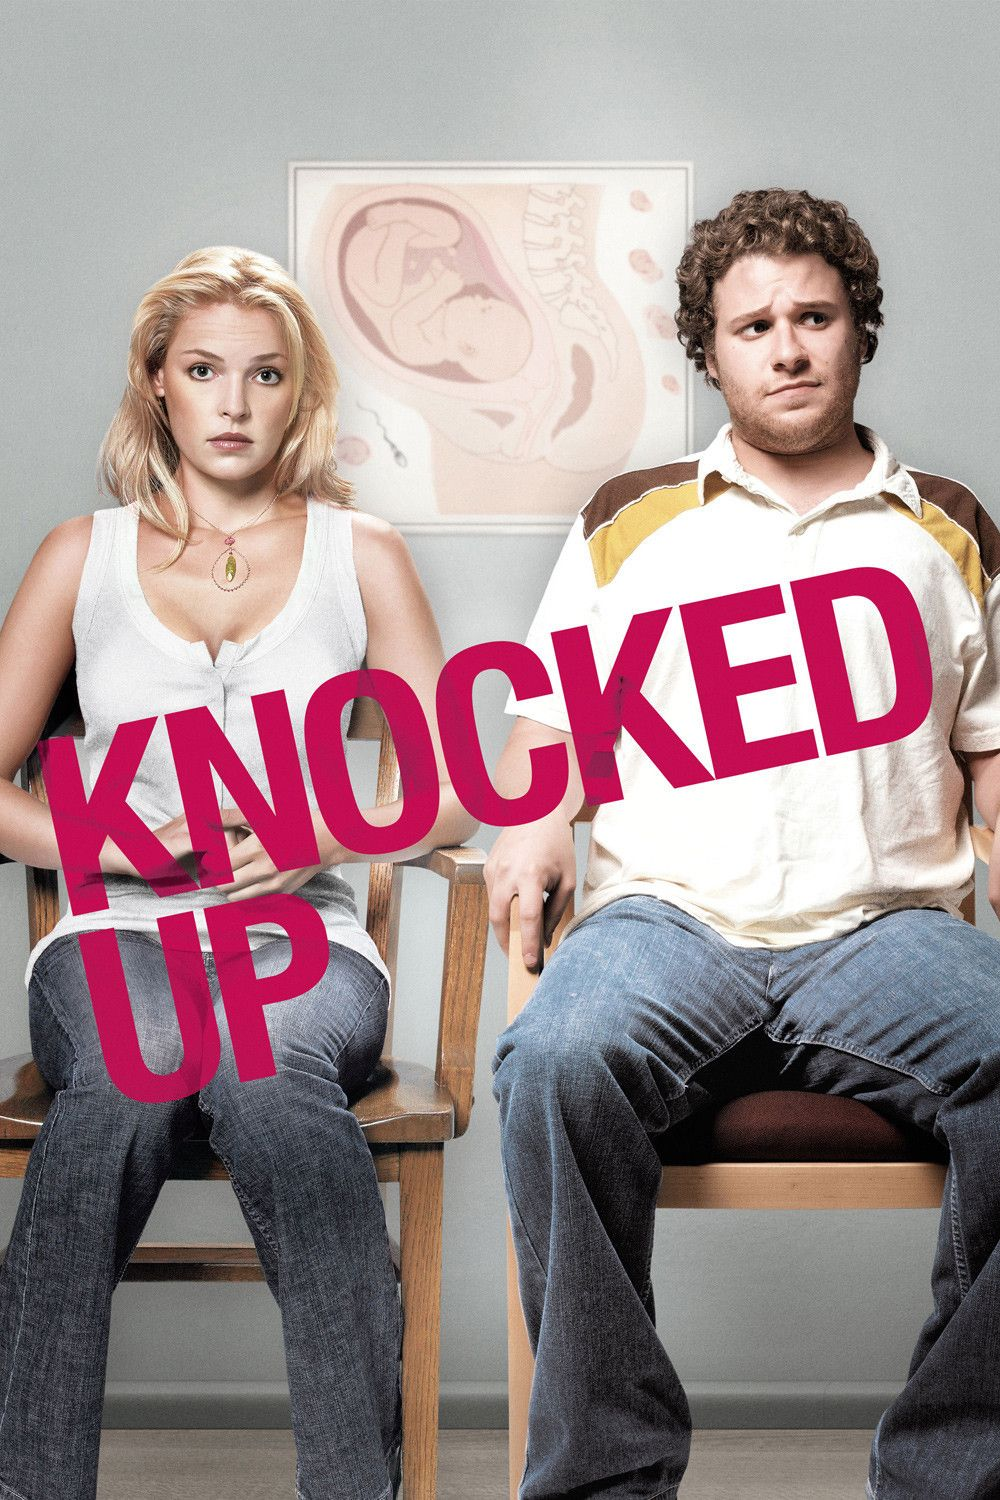 Knocked Up Full Movie Click Image to Watch Knocked Up (2007)